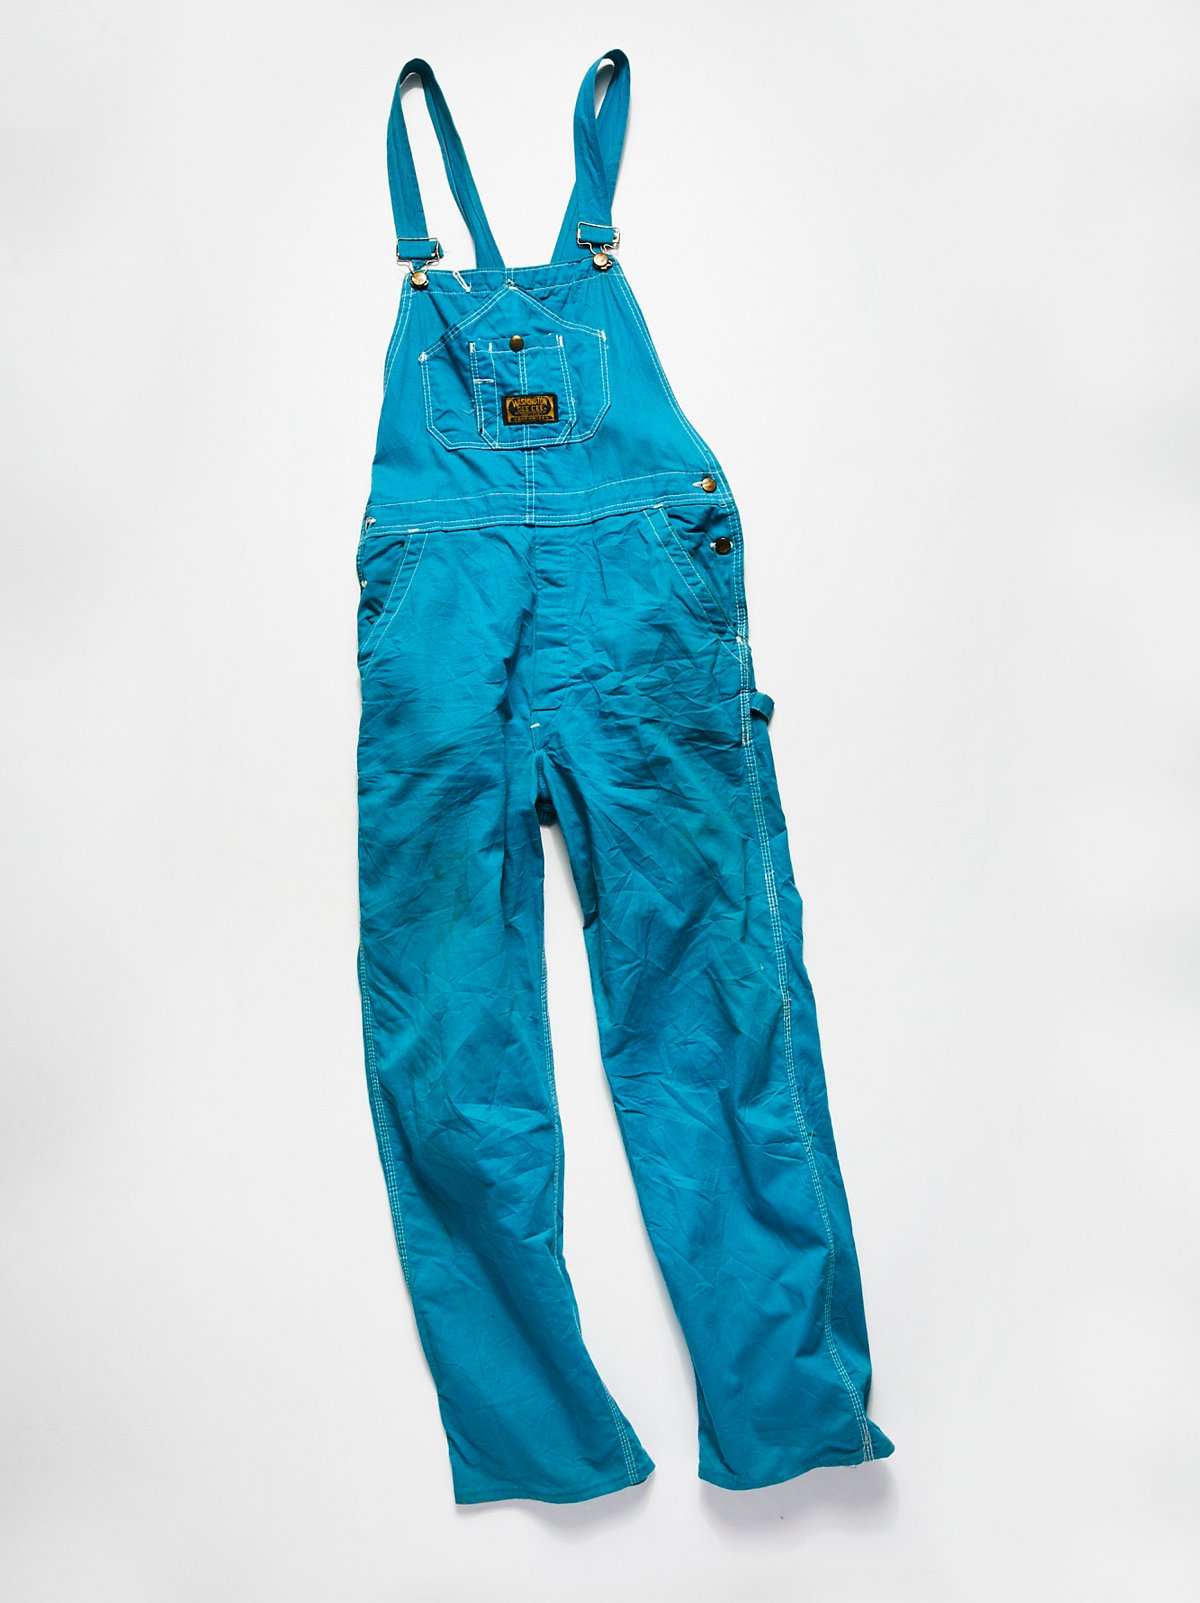 Vintage 1980s Colored Denim Overalls